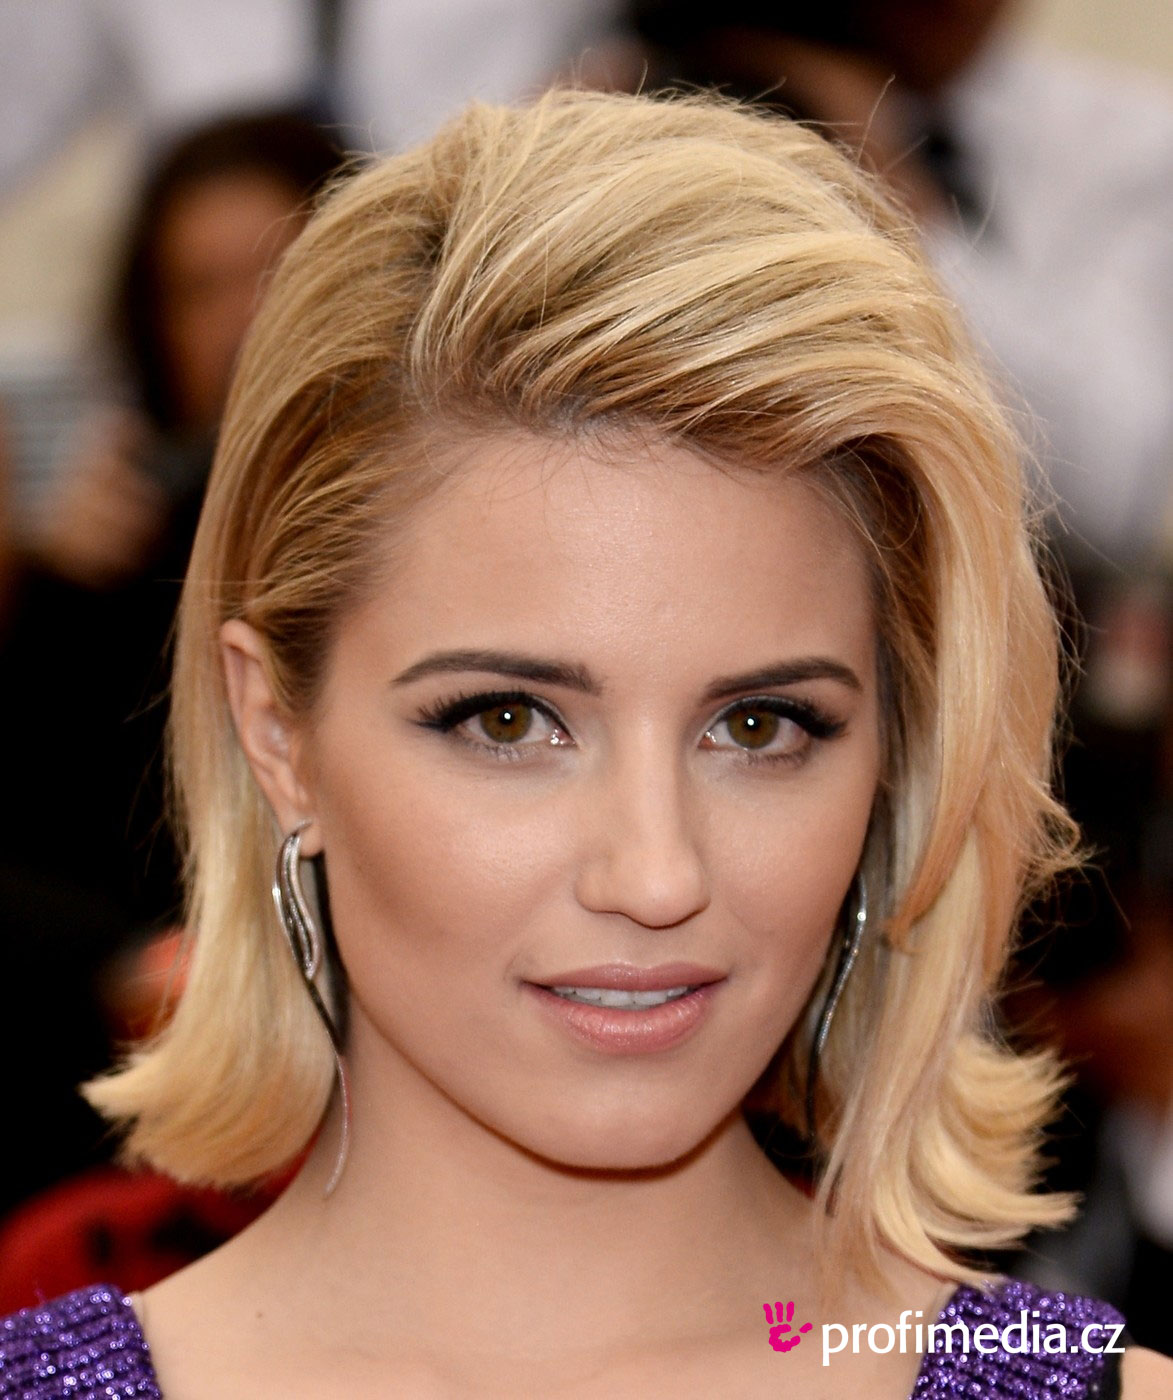 dianna agron hair hartruse - photo #7